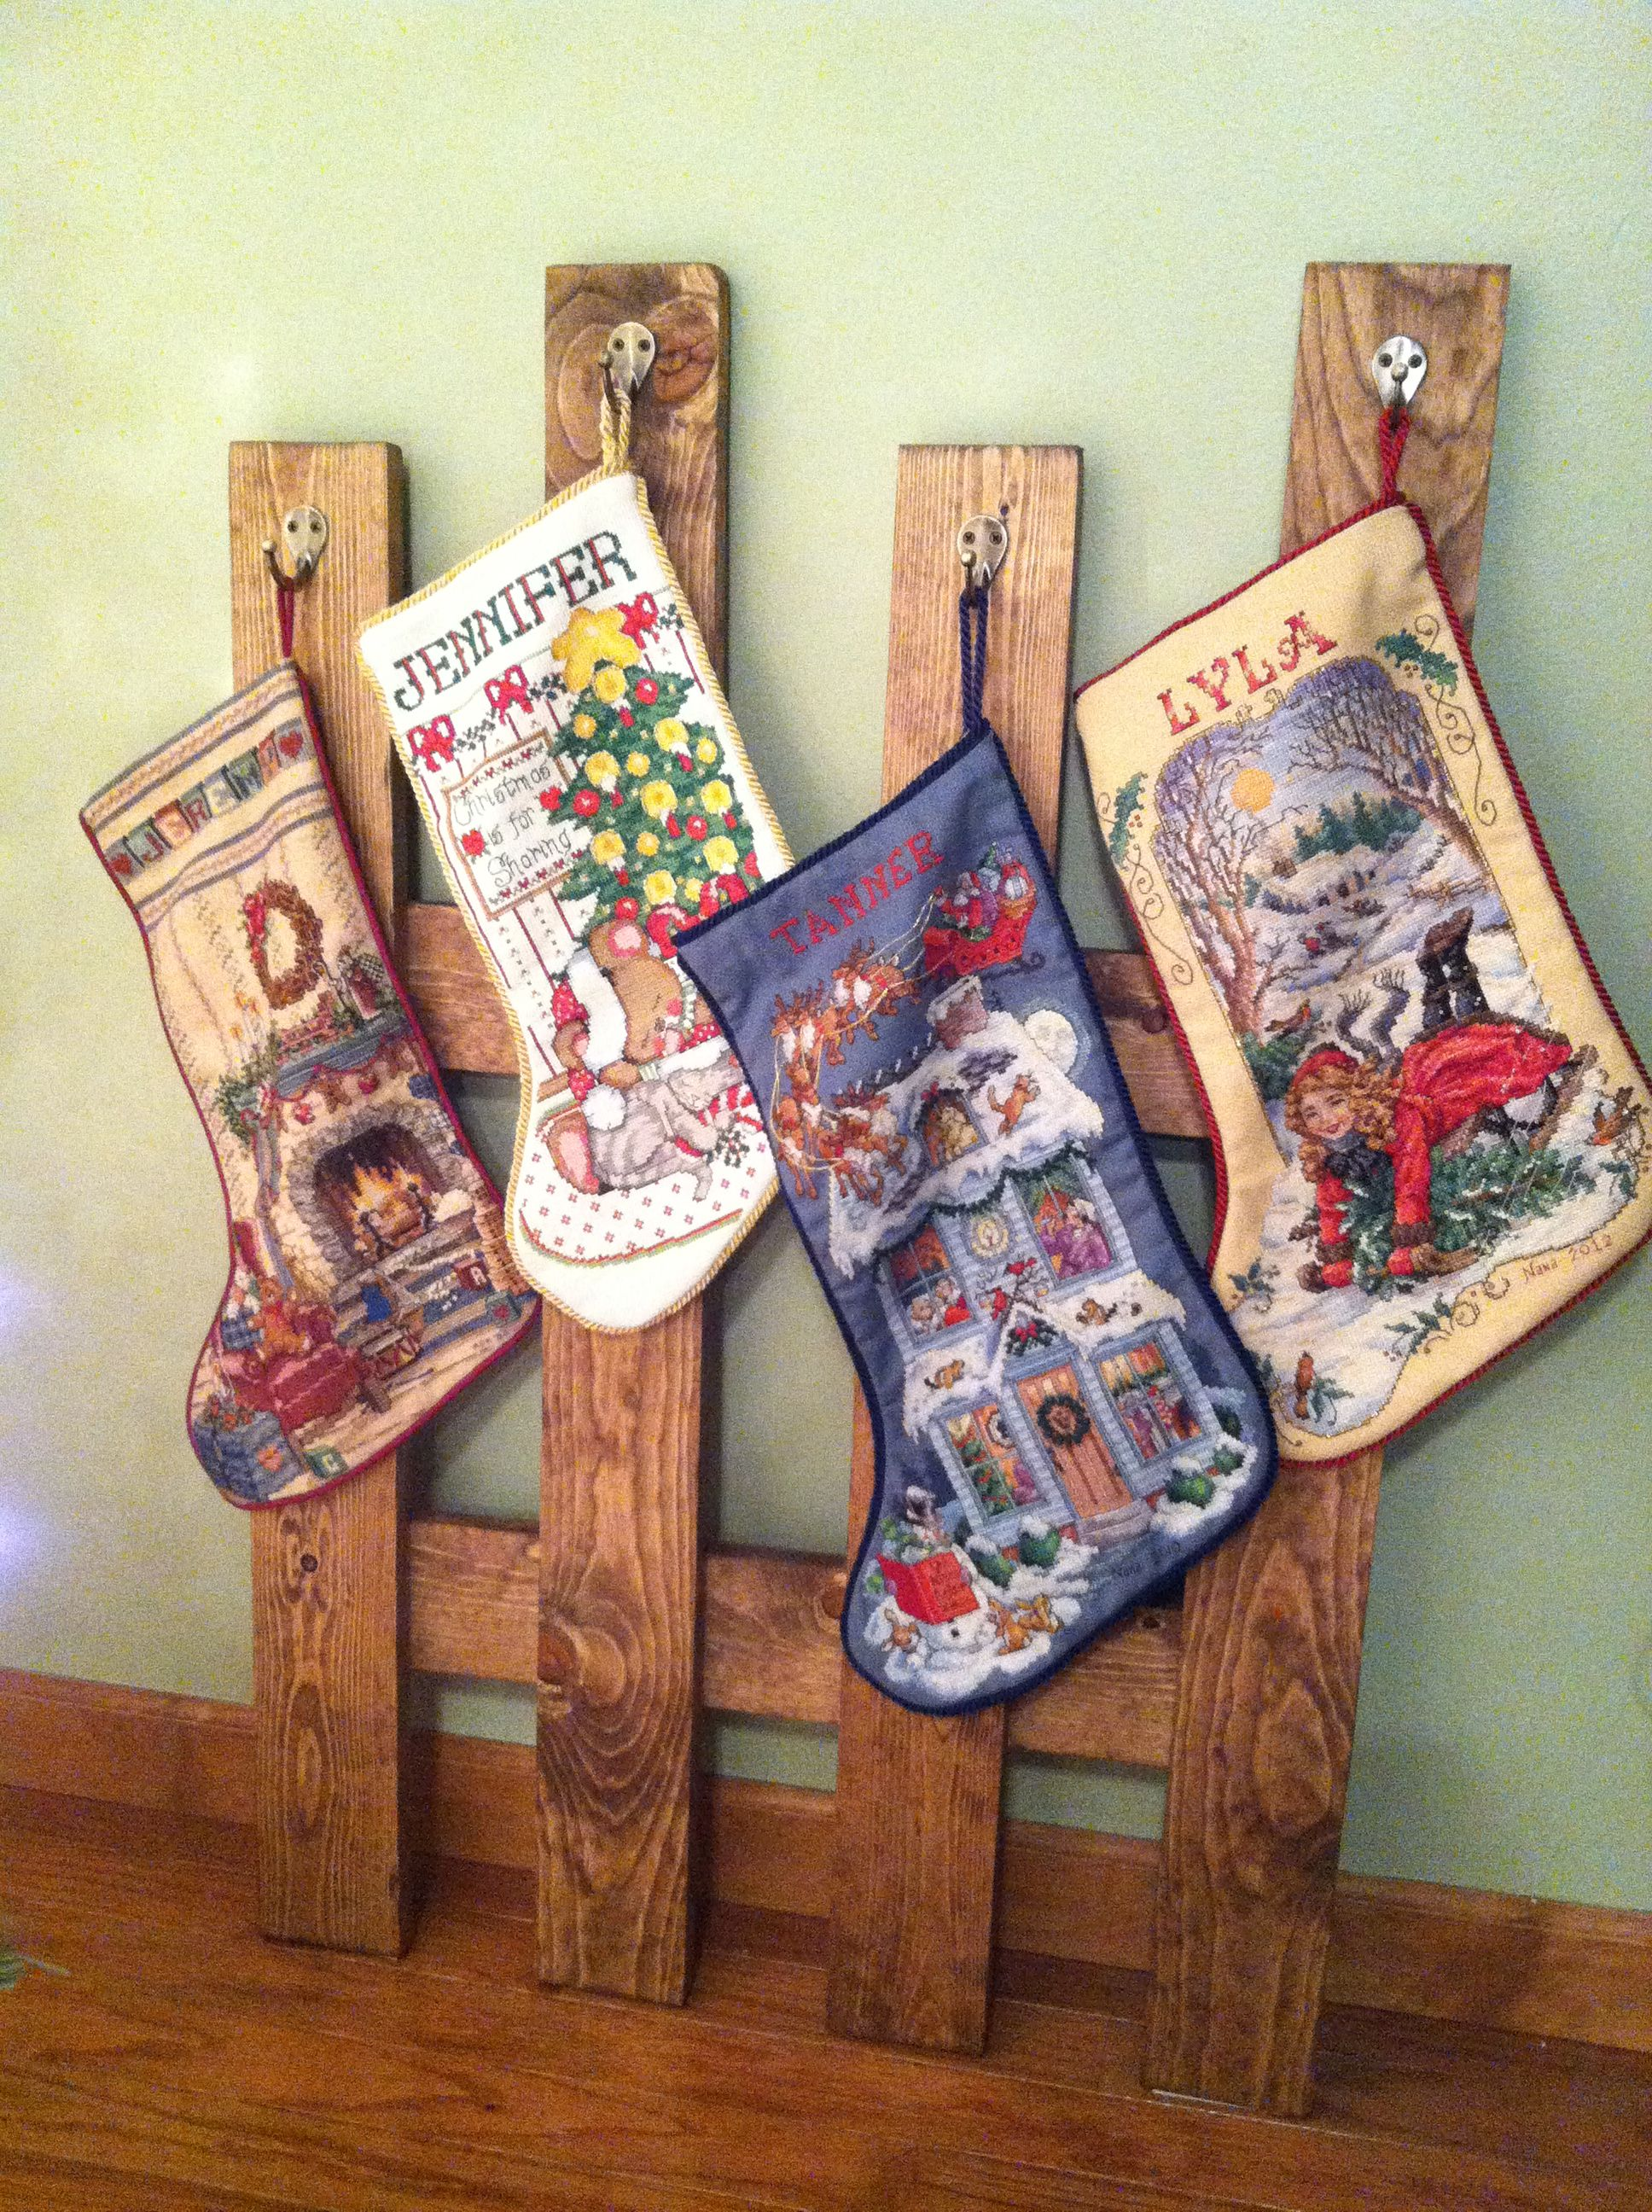 No Fireplace No Mantle Stocking Holder Christmas Stocking Hangers Christmas Stocking Holders Christmas Crafts Decorations